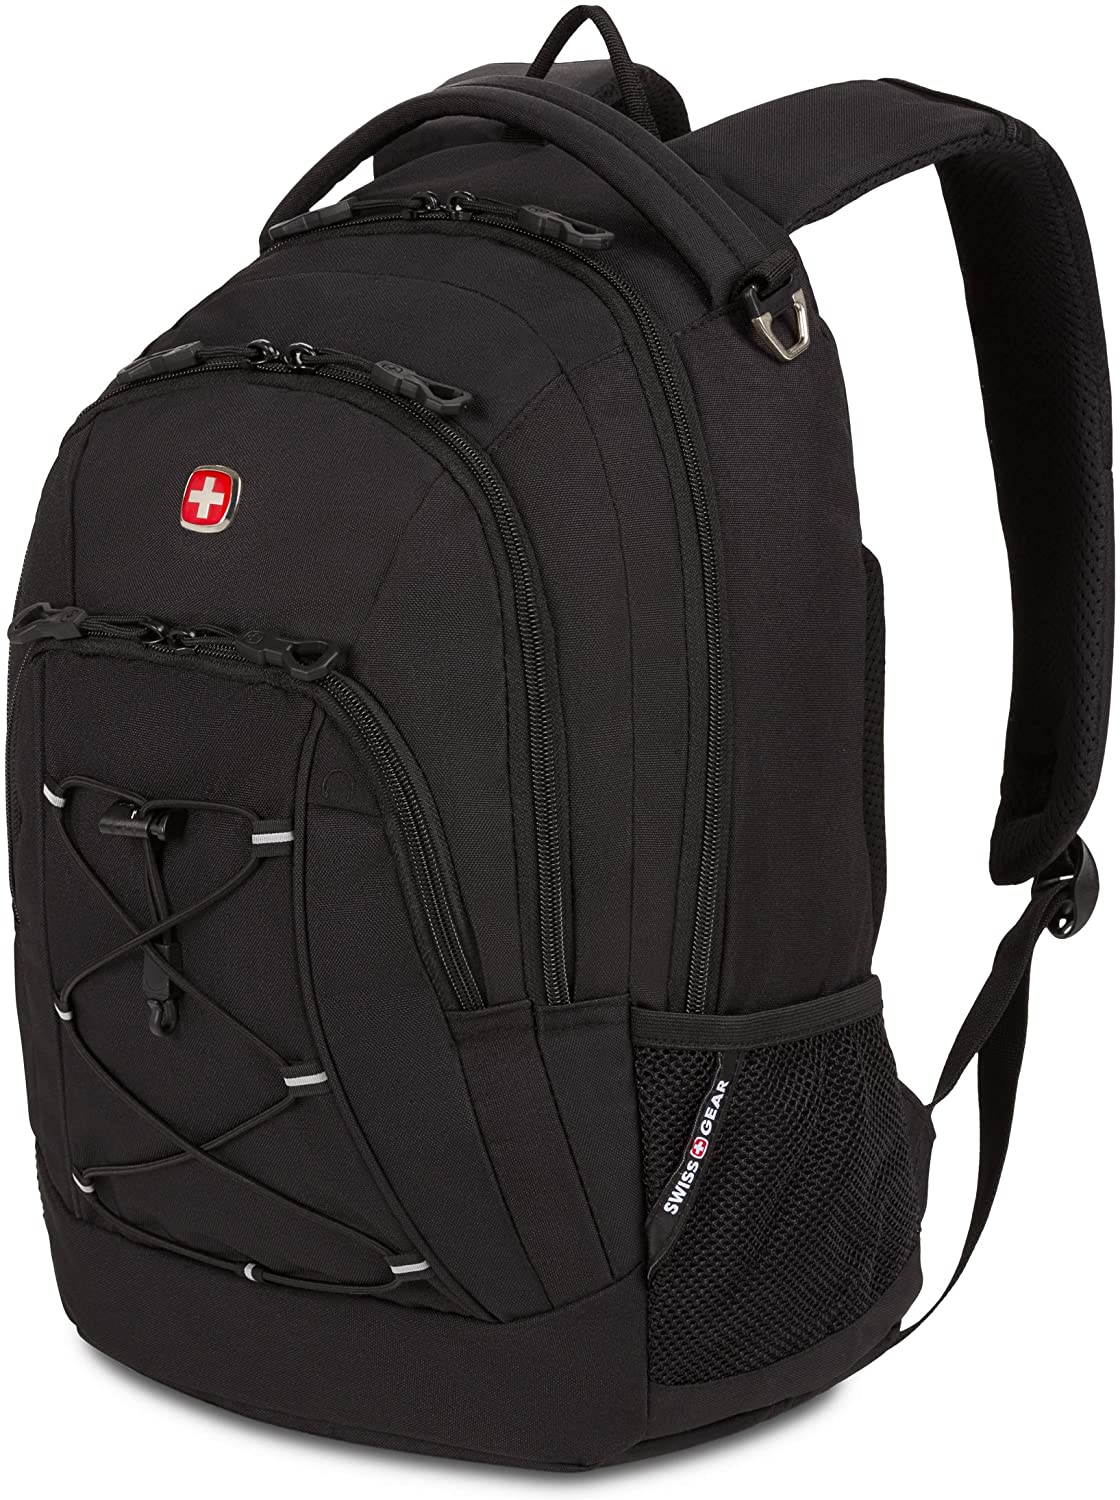 SWISSGEAR 1186 Bungee Laptop Backpack | Ideal for Commuting, Work, Travel, College, and School | Fits 13 Inch Laptop Notebook - Black